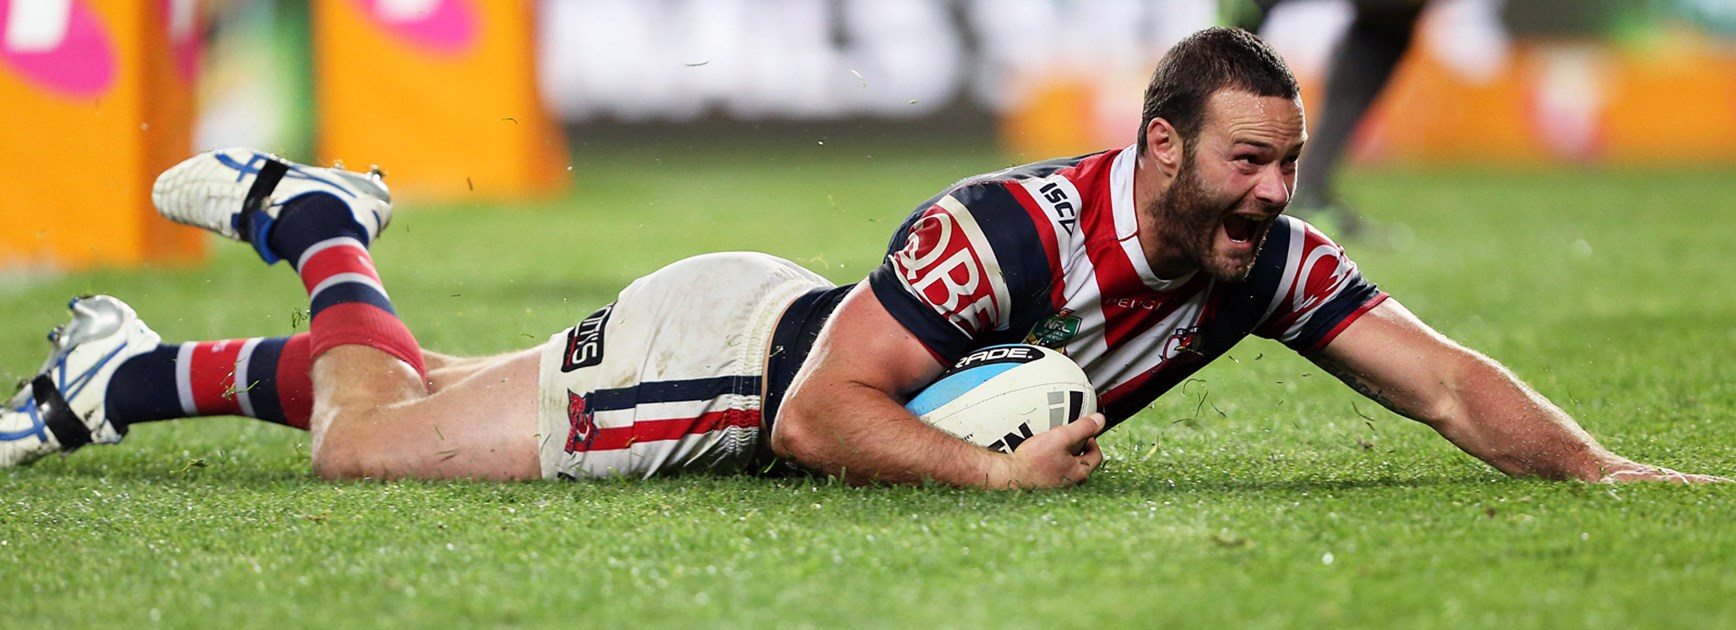 Boyd Cordner crossed for a try against the Bulldogs in their semi-final clash.